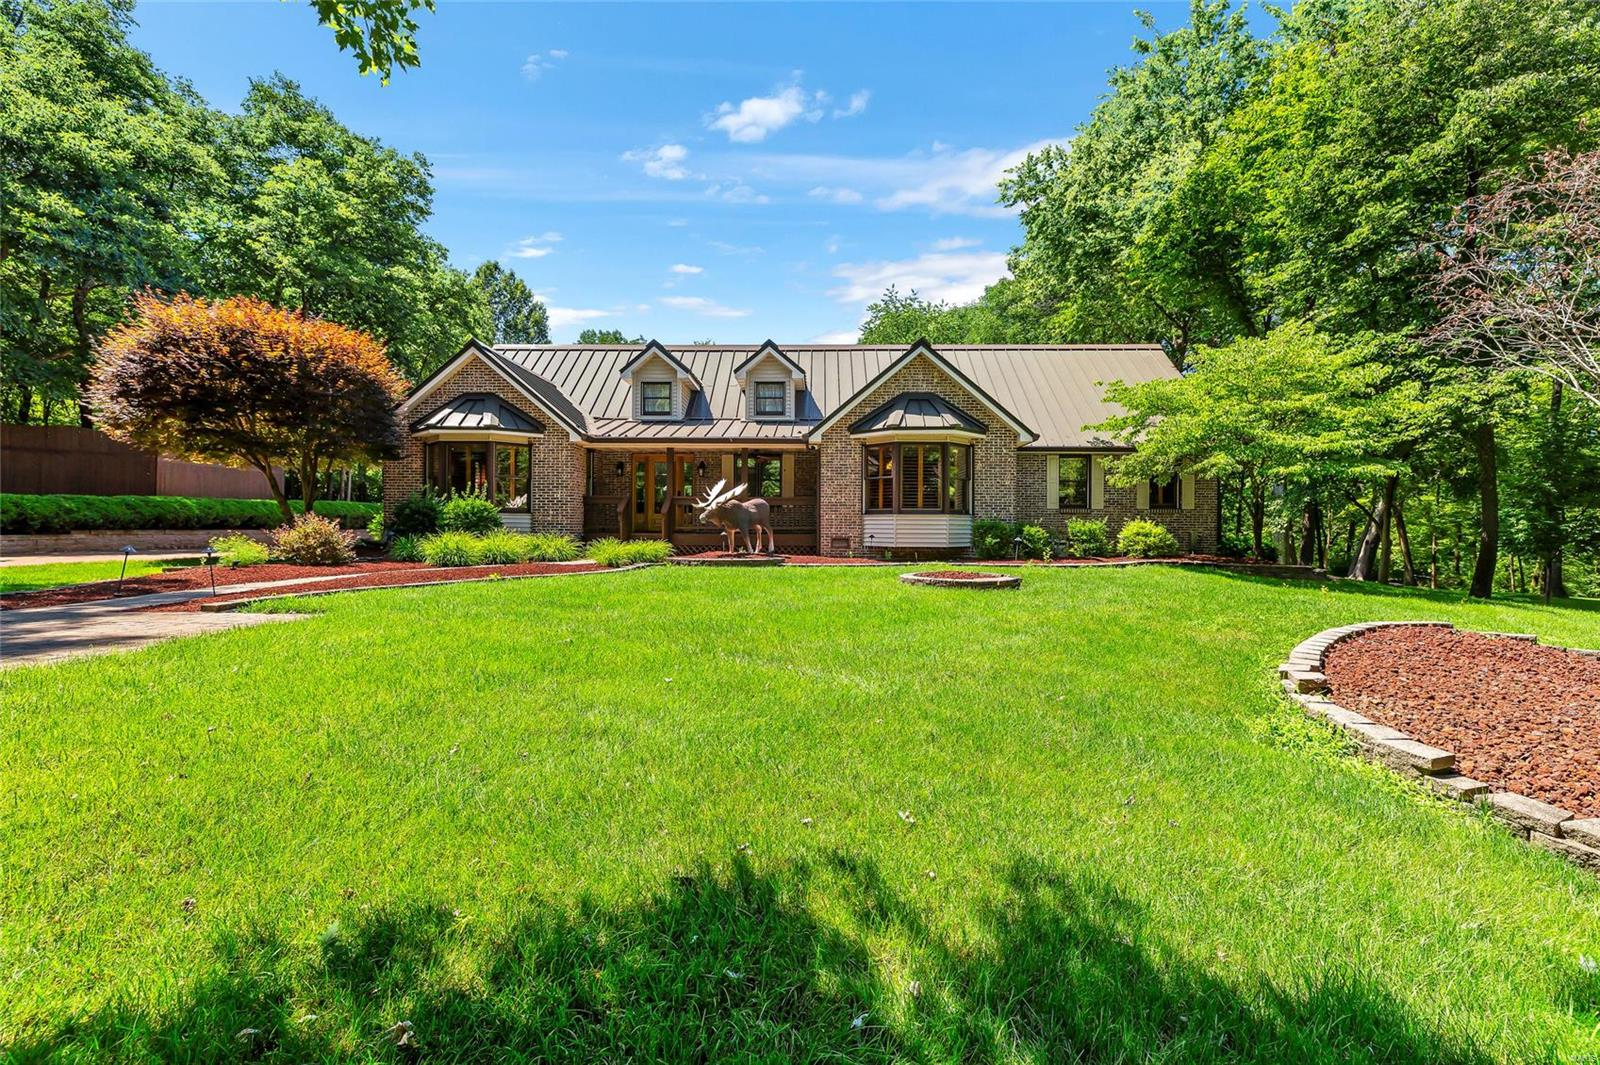 57 Circle Drive, Fairview Heights, IL 62208